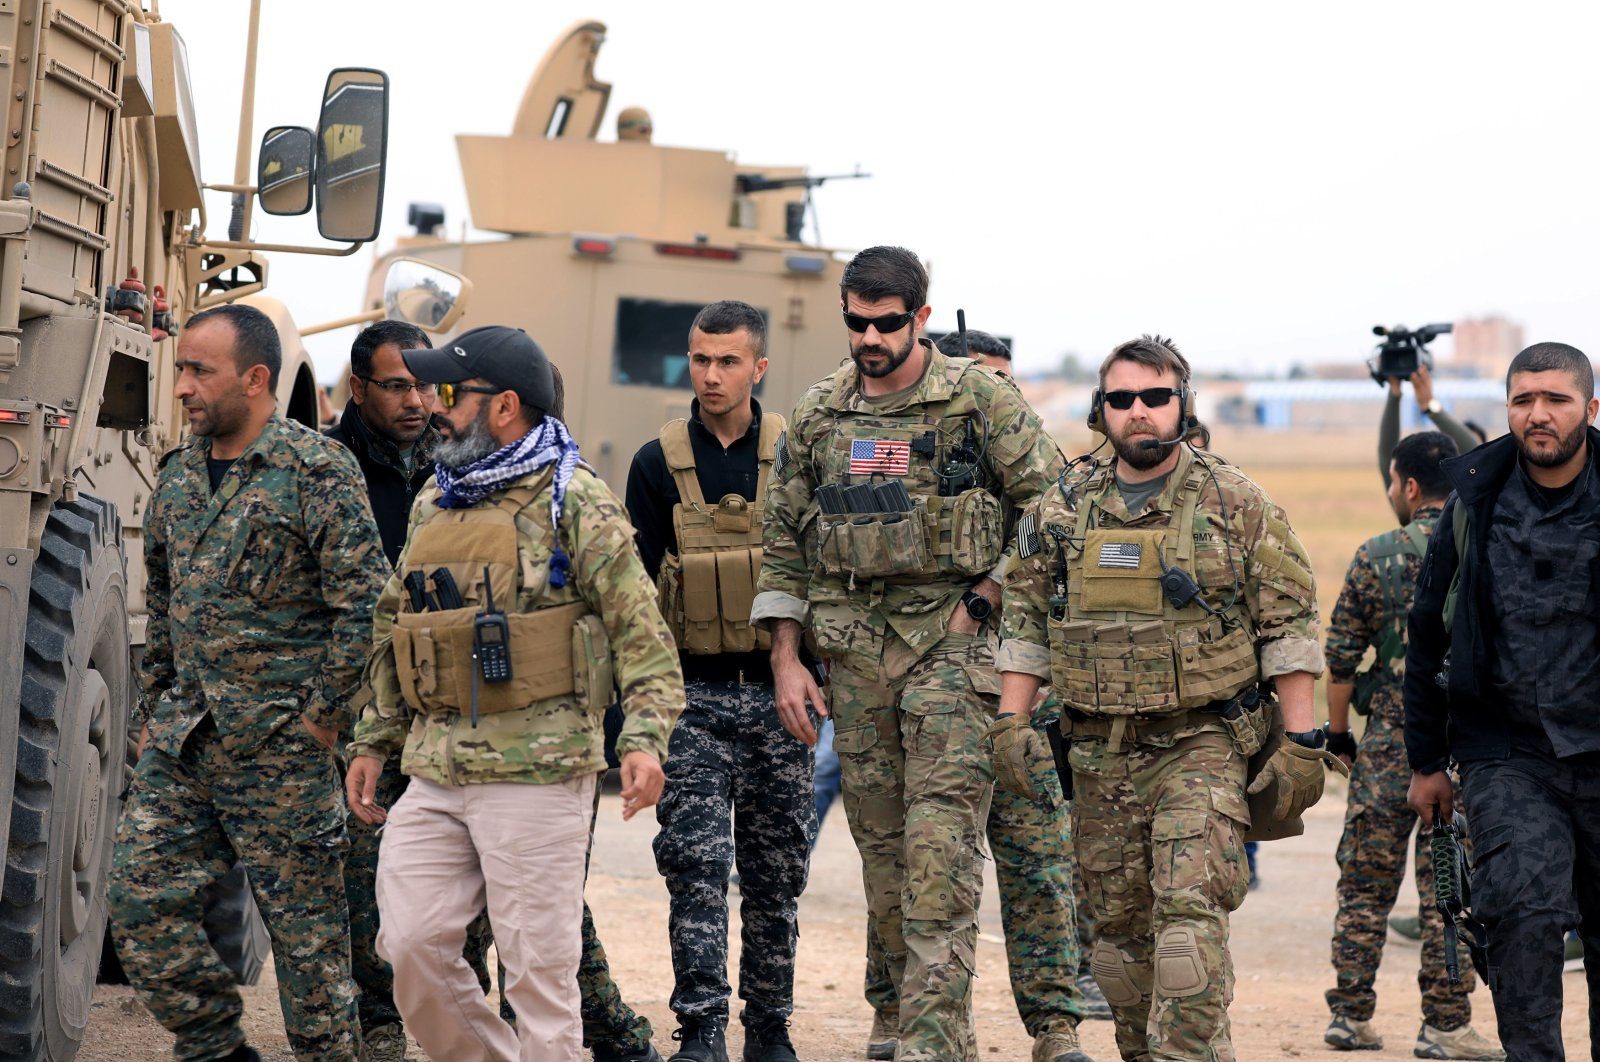 PKK/YPG terrorists and the U.S. troops during a joint patrol near the Turkish border in Hasakah, Syria, Nov. 4, 2018. (REUTERS Photo)